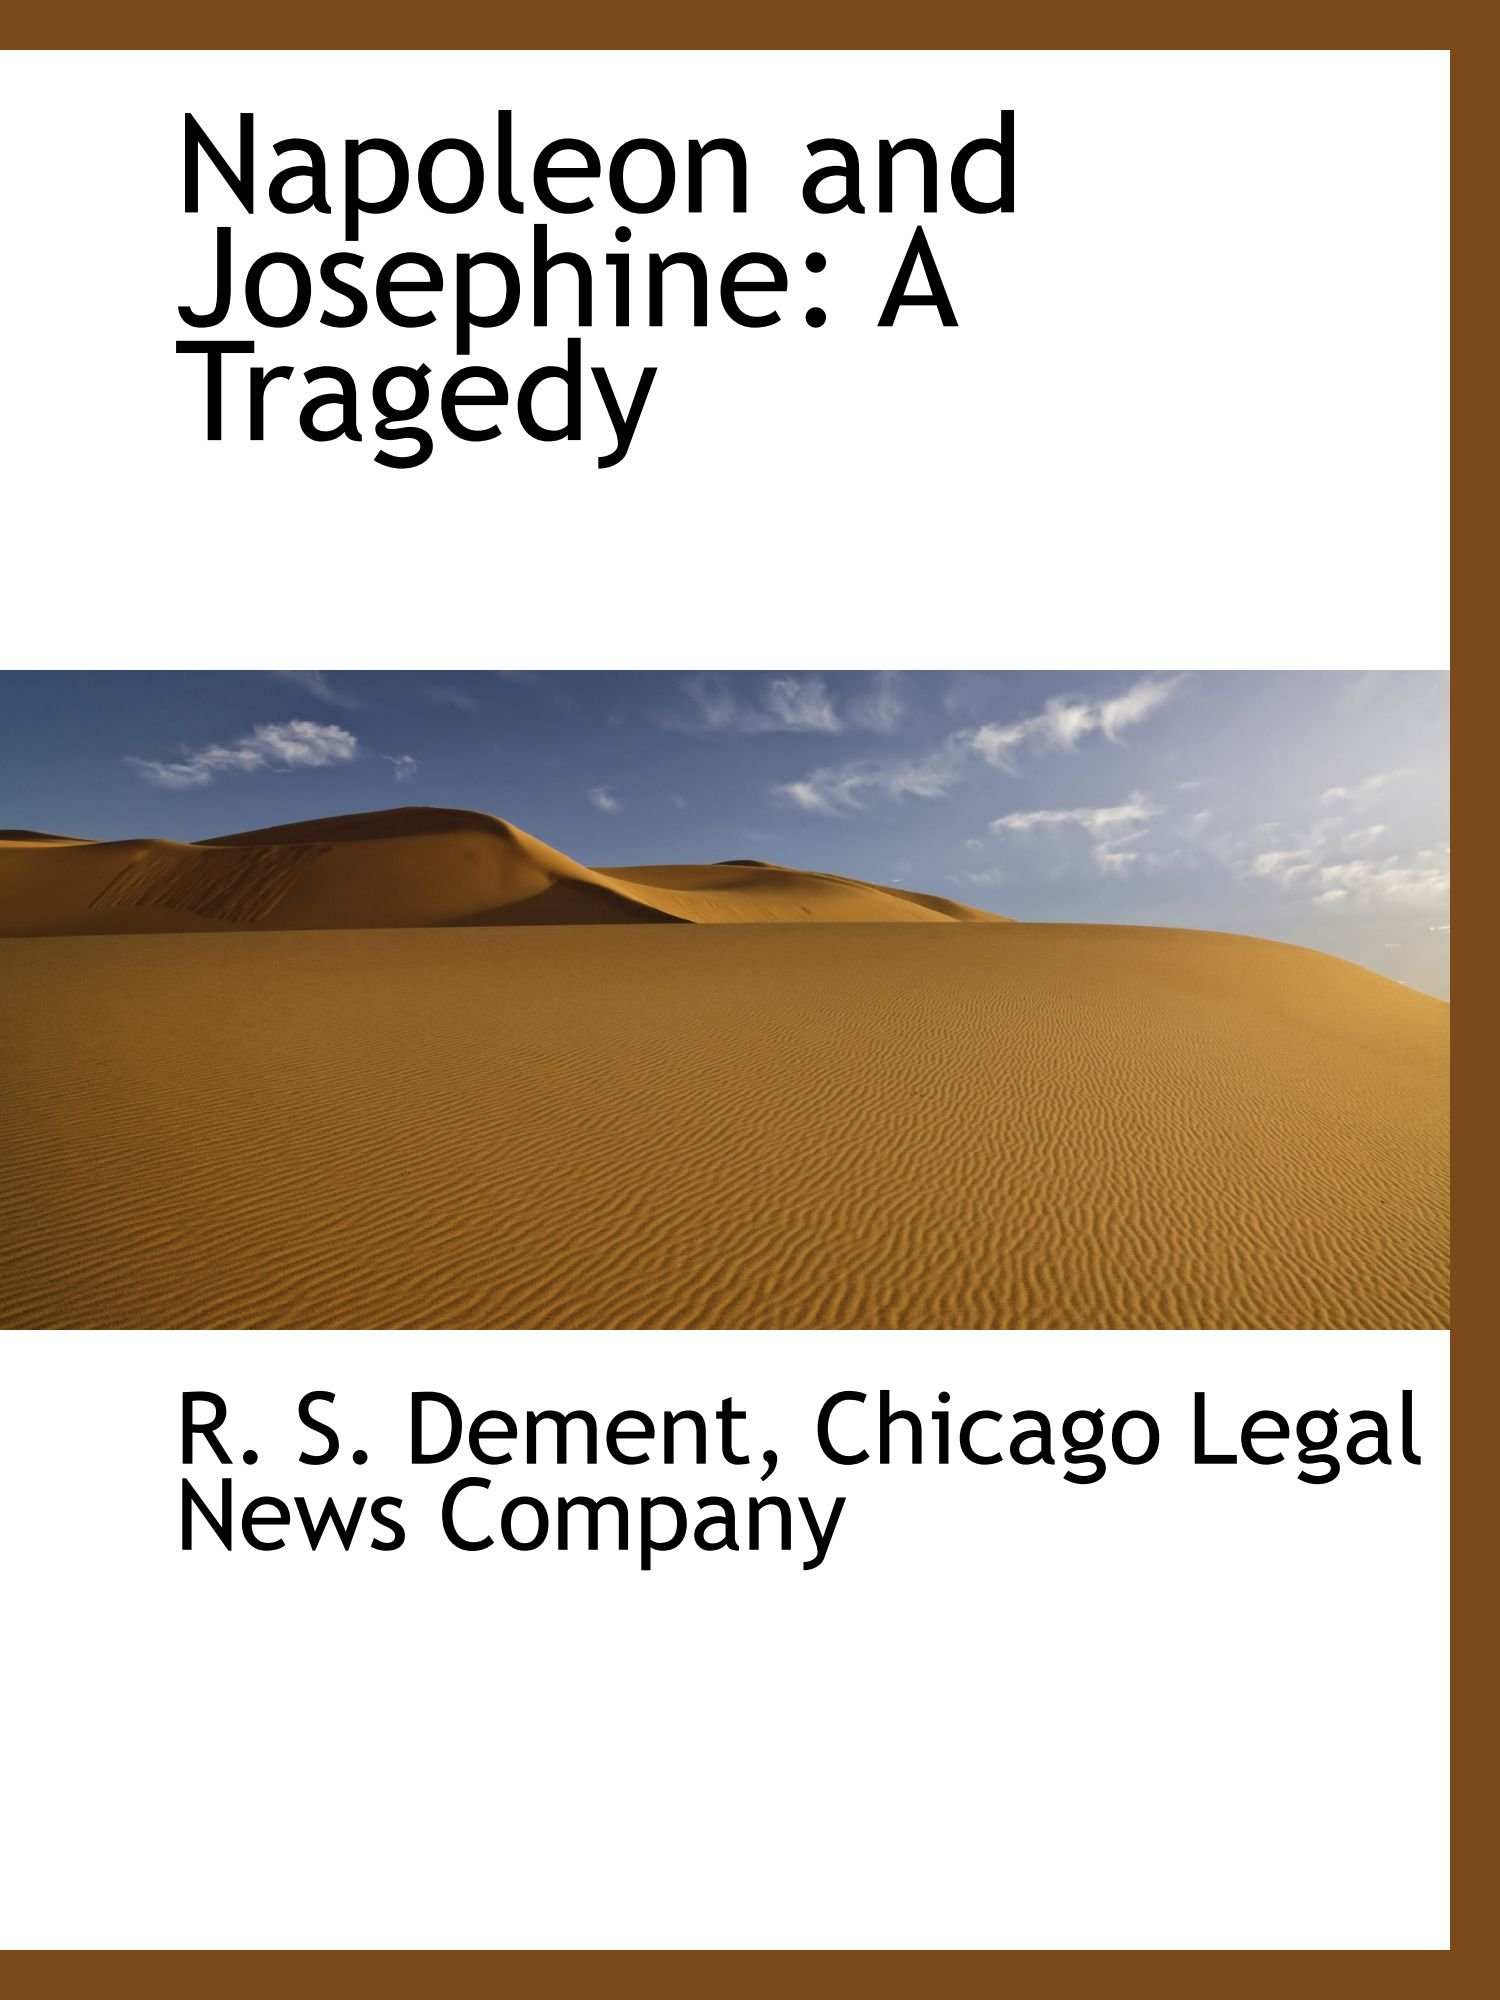 Napoleon and Josephine: A Tragedy Text fb2 book